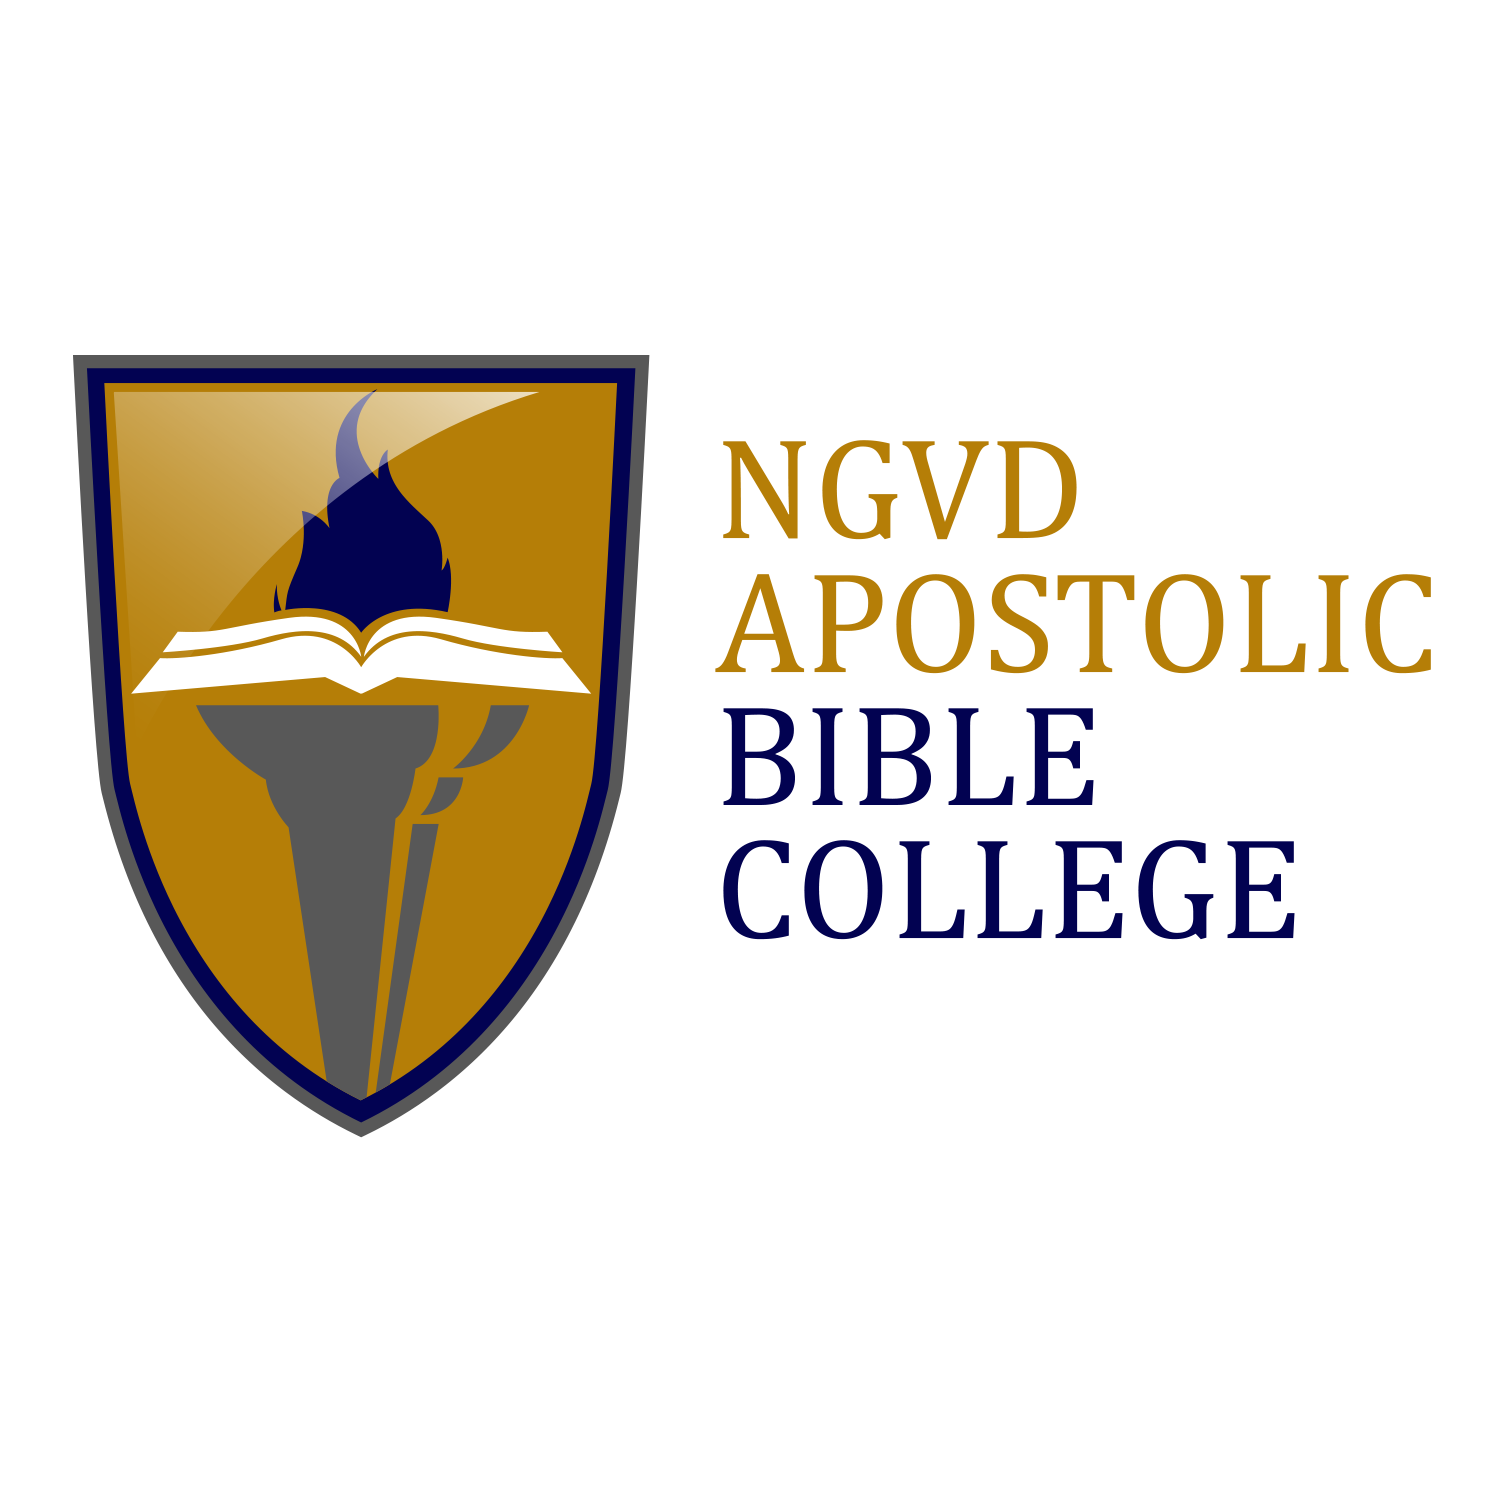 NGVD Apostolic Bible College